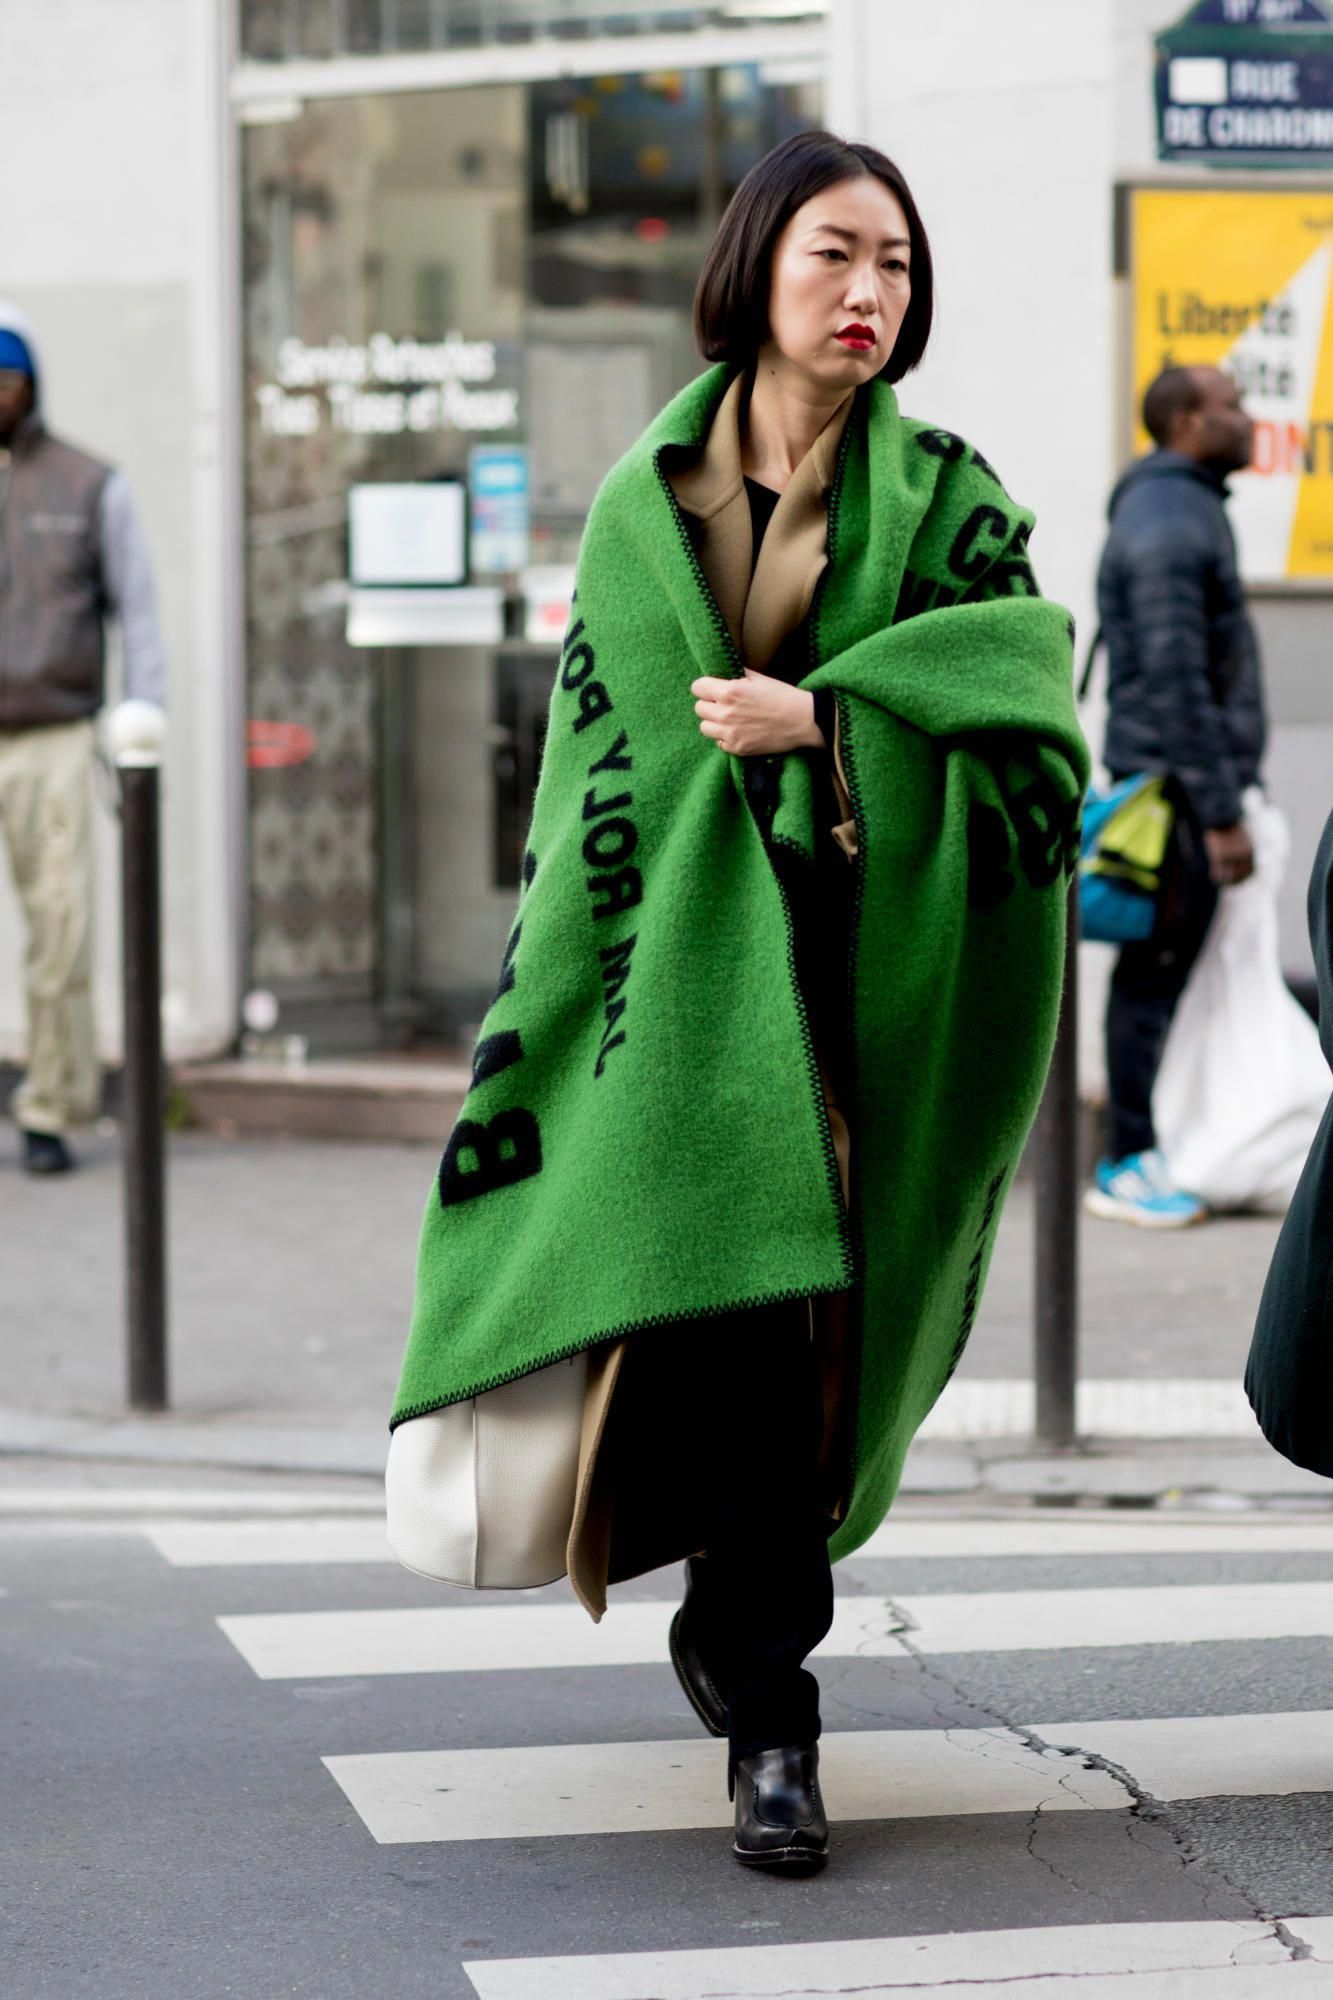 The Street Style Crowd at Paris Men s Fashion Week Brought Back the Bucket  Hat - Fashionista f13a62bea16d